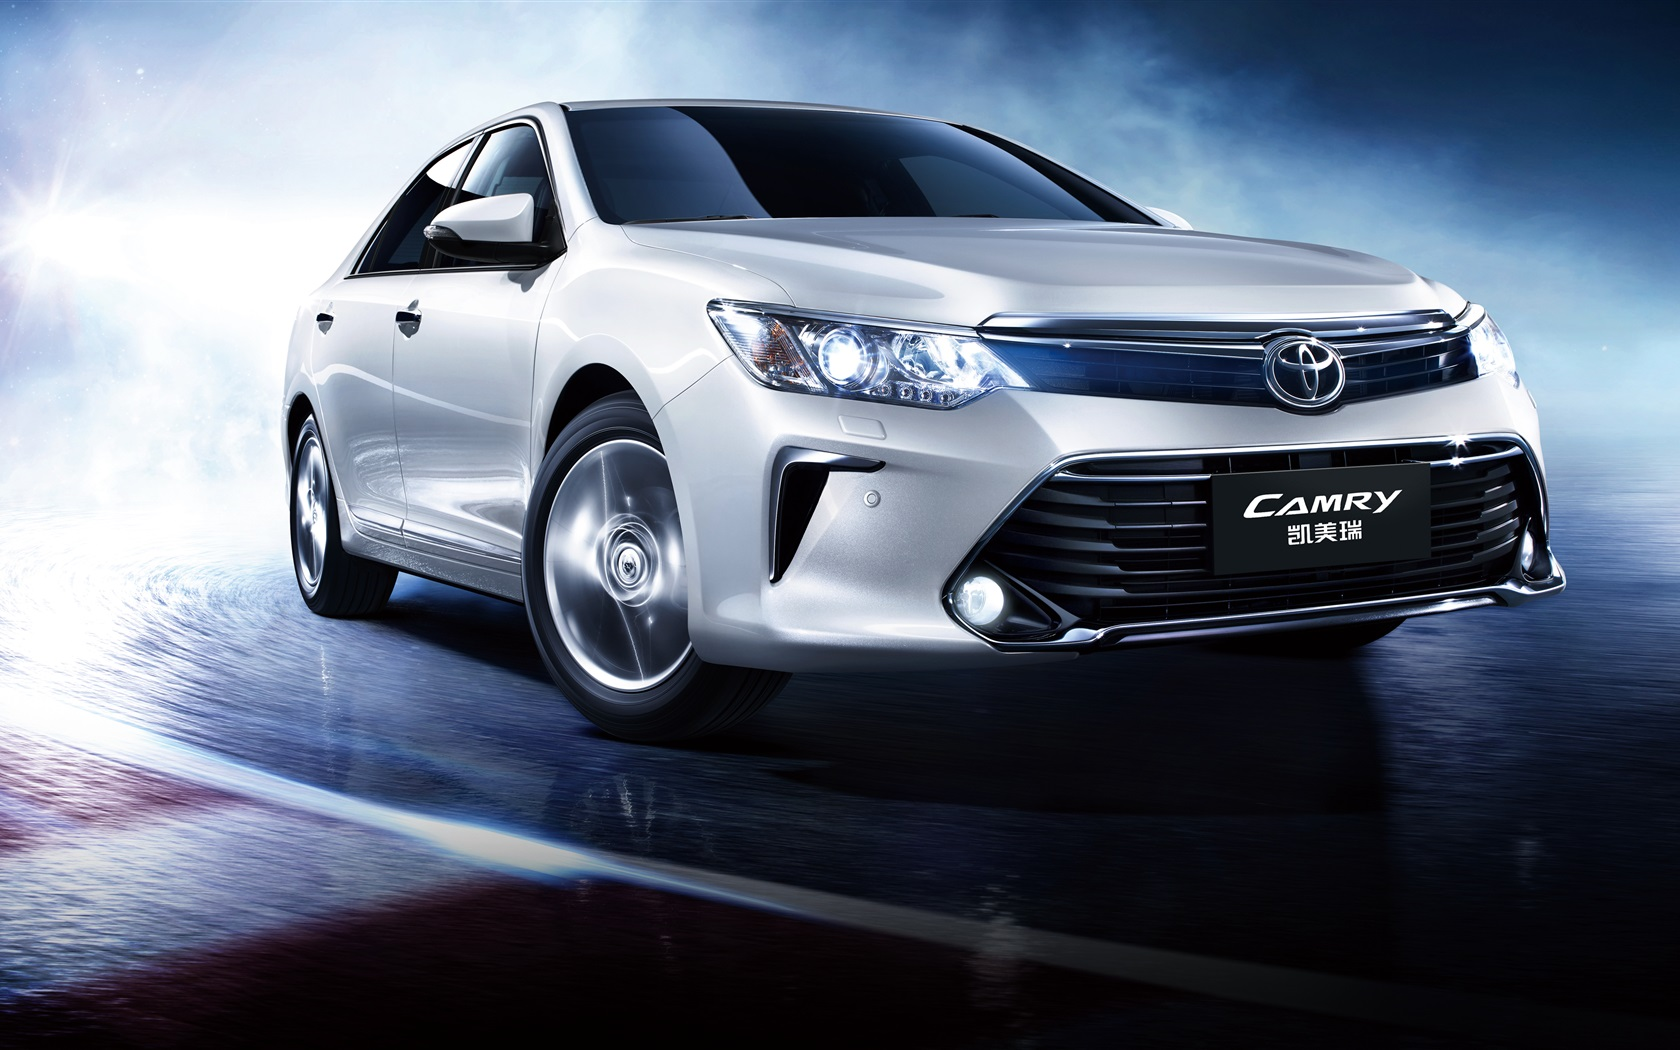 toyota camry 10th anniversary car speed wallpaper. Black Bedroom Furniture Sets. Home Design Ideas